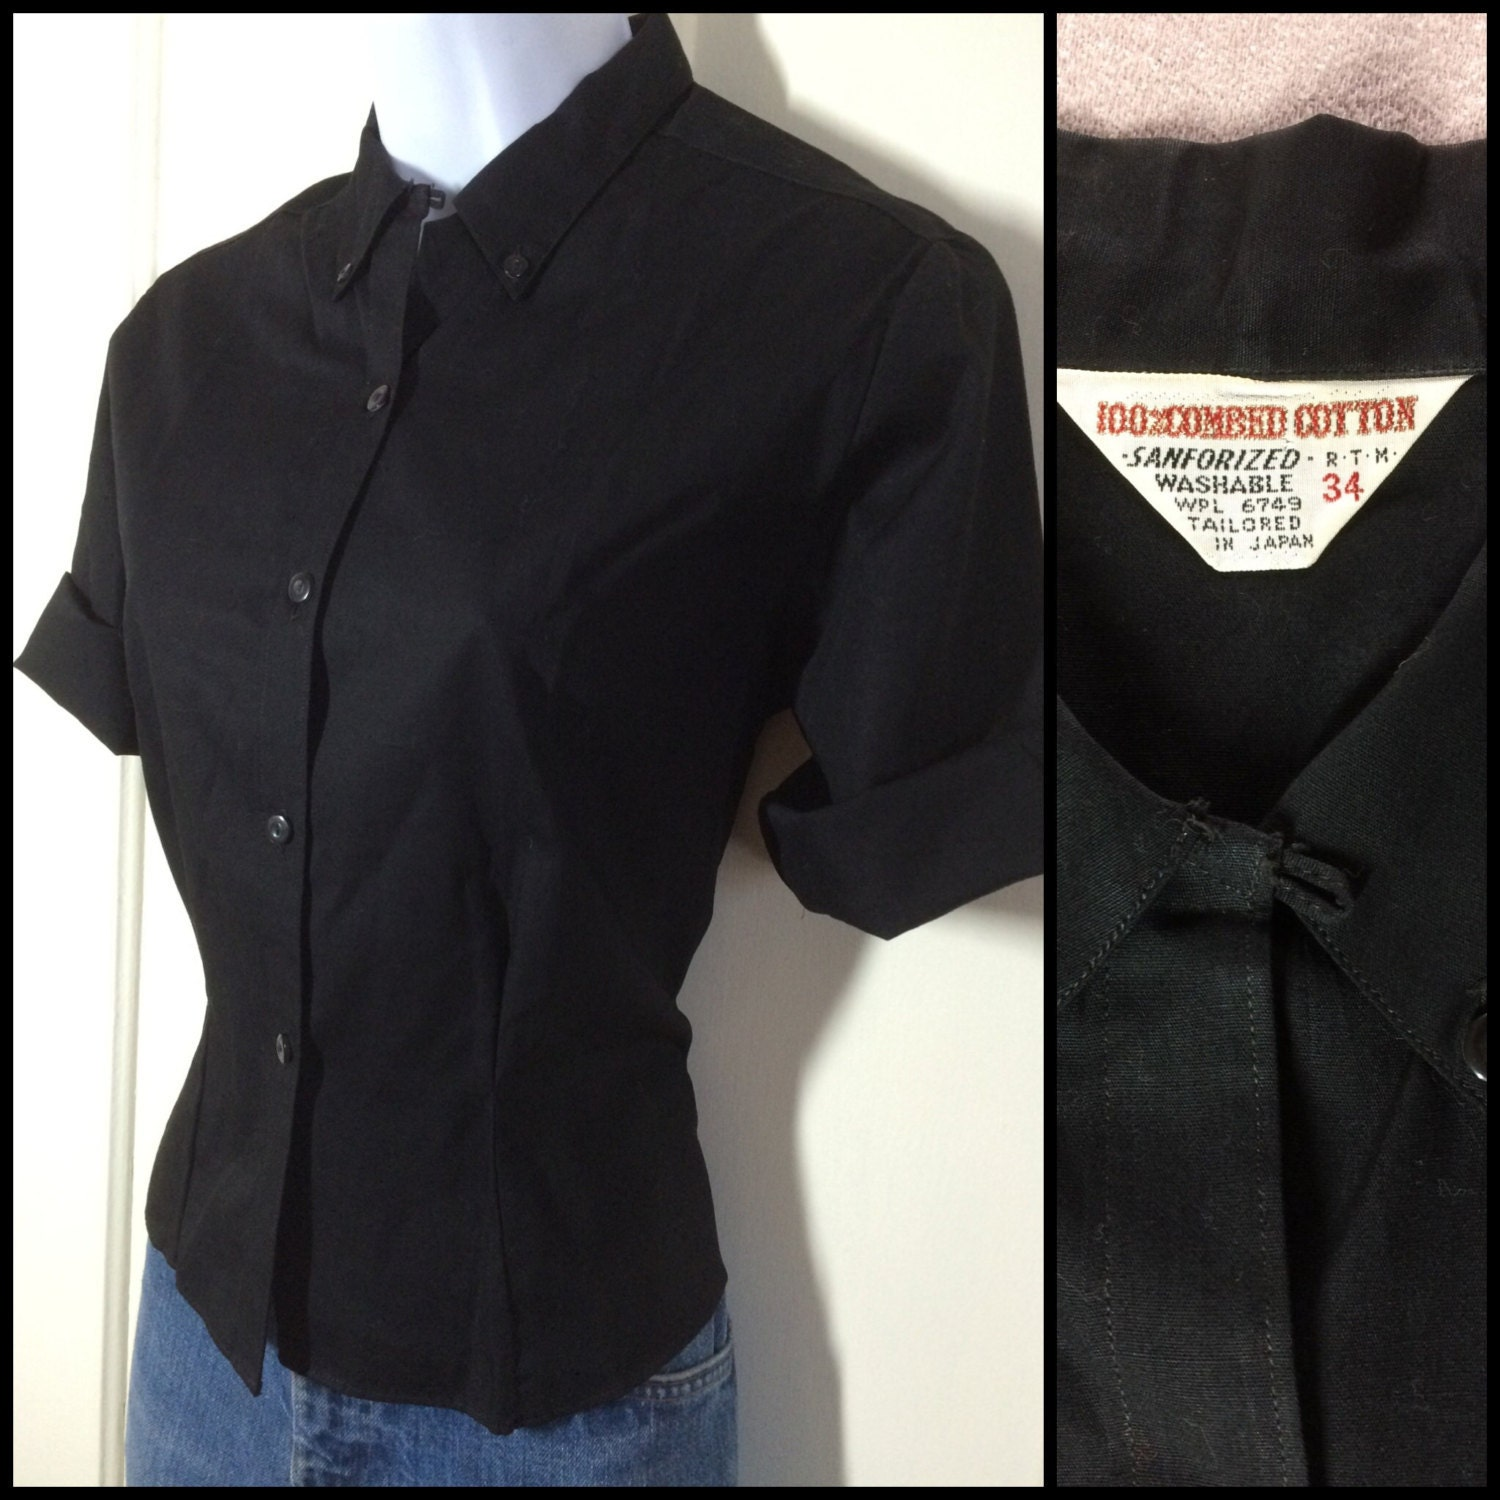 1950s black tailored rockabilly blouse with loop and button down collar